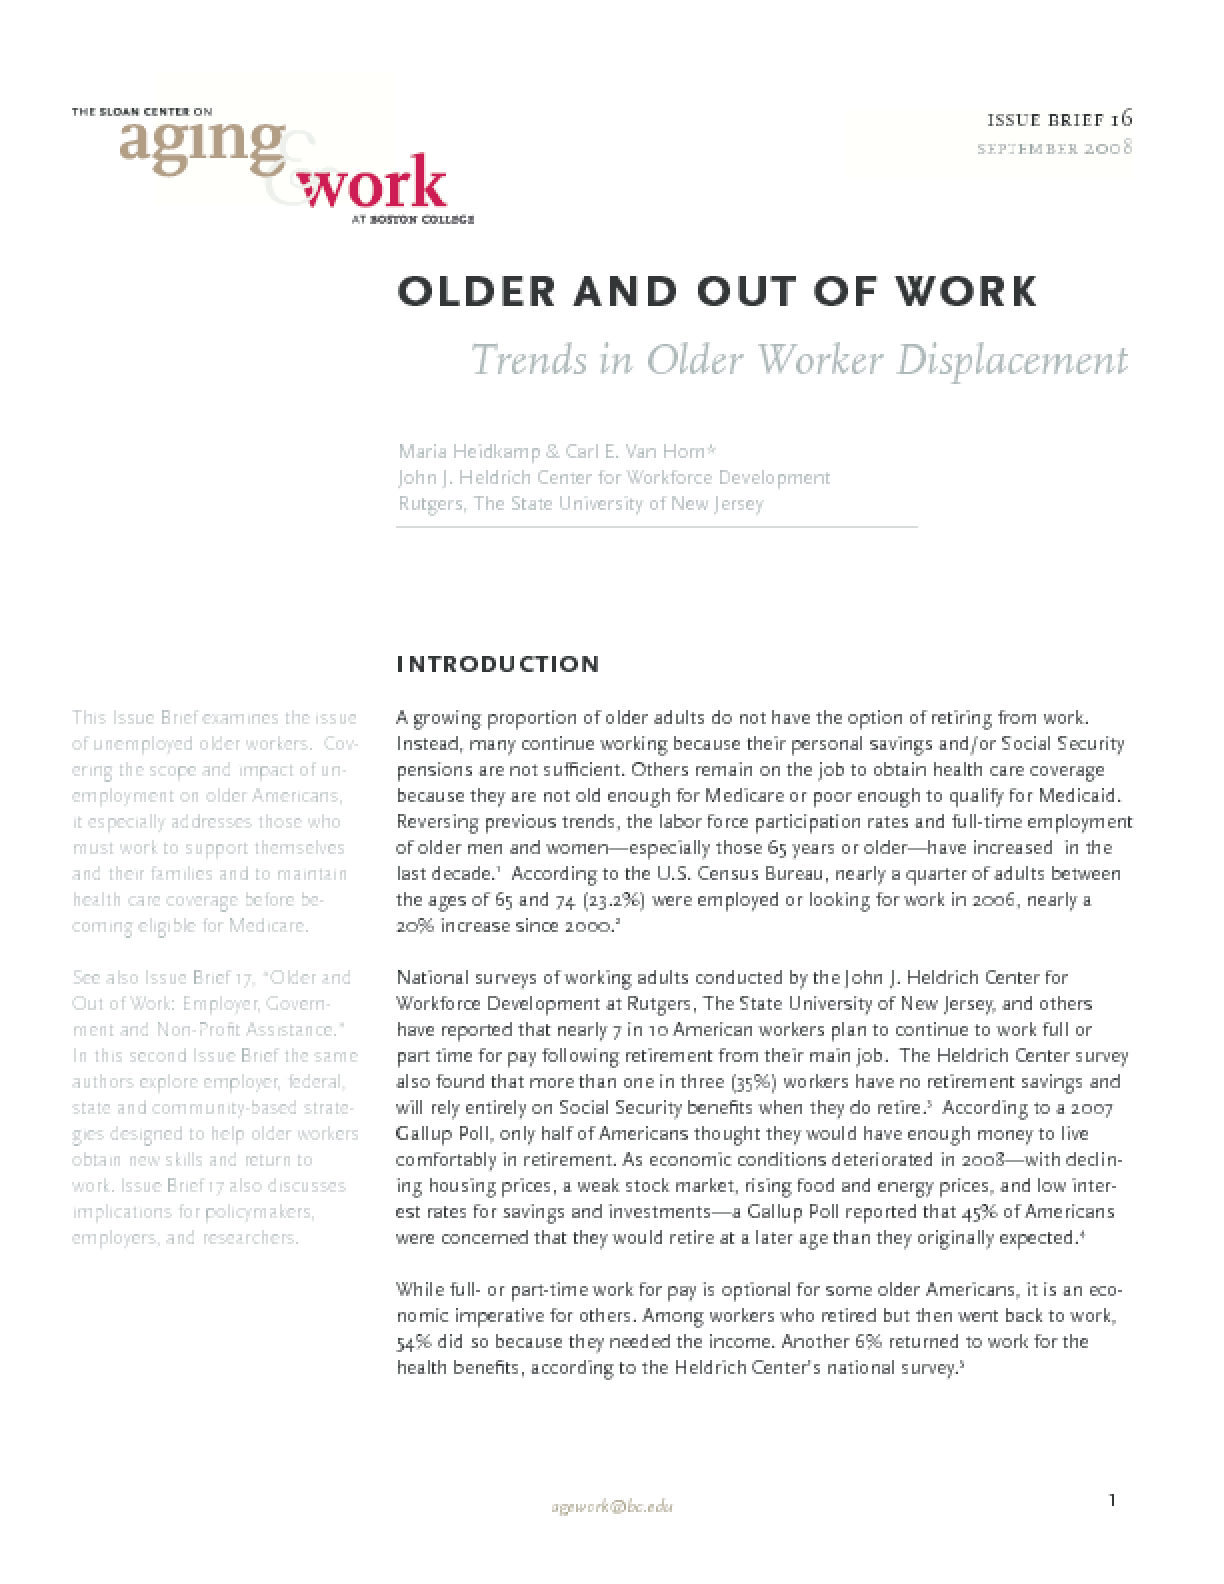 Older and Out of Work: Trends in Older Worker Displacement